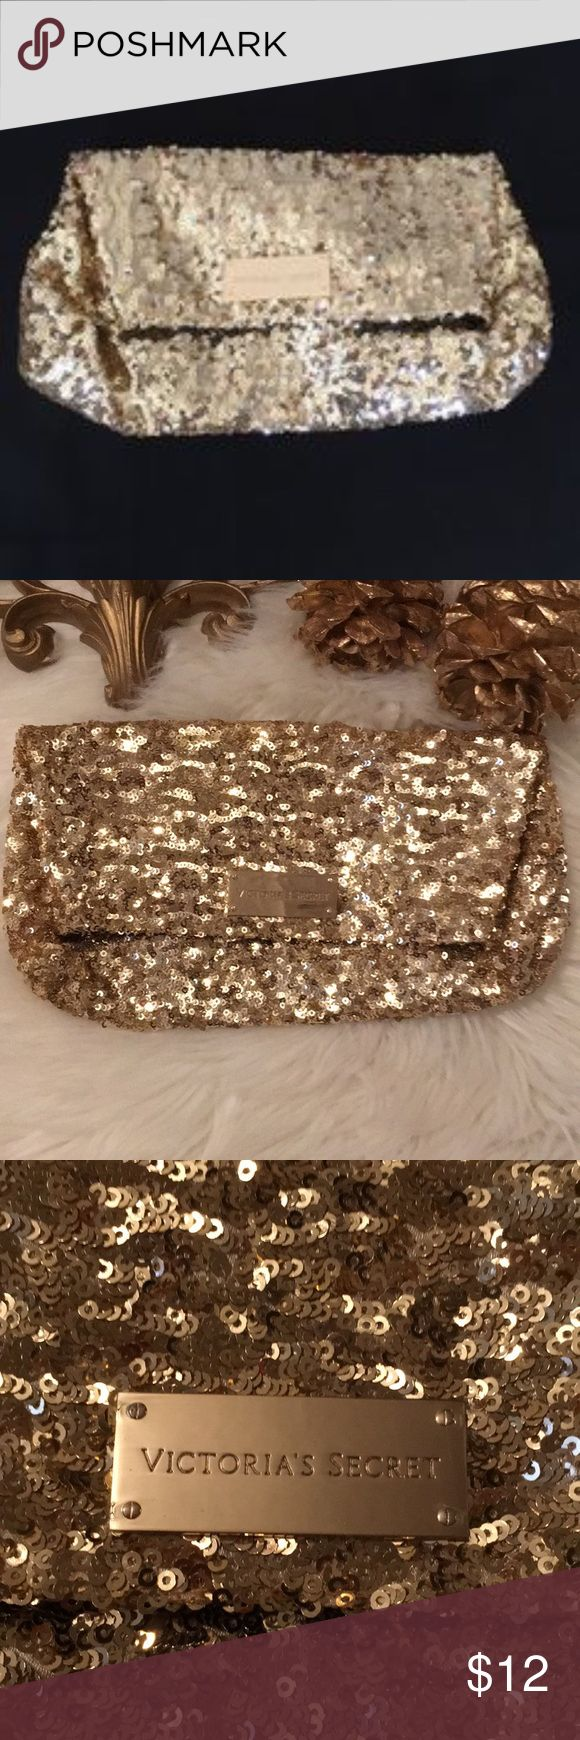 Victoria's Secret Elegant Gold Sequins Clutch Bag Excellent condition Elegant Gold Sequins Clutch Or Makeup Bag Victoria's Secret Bags Clutches & Wristlets